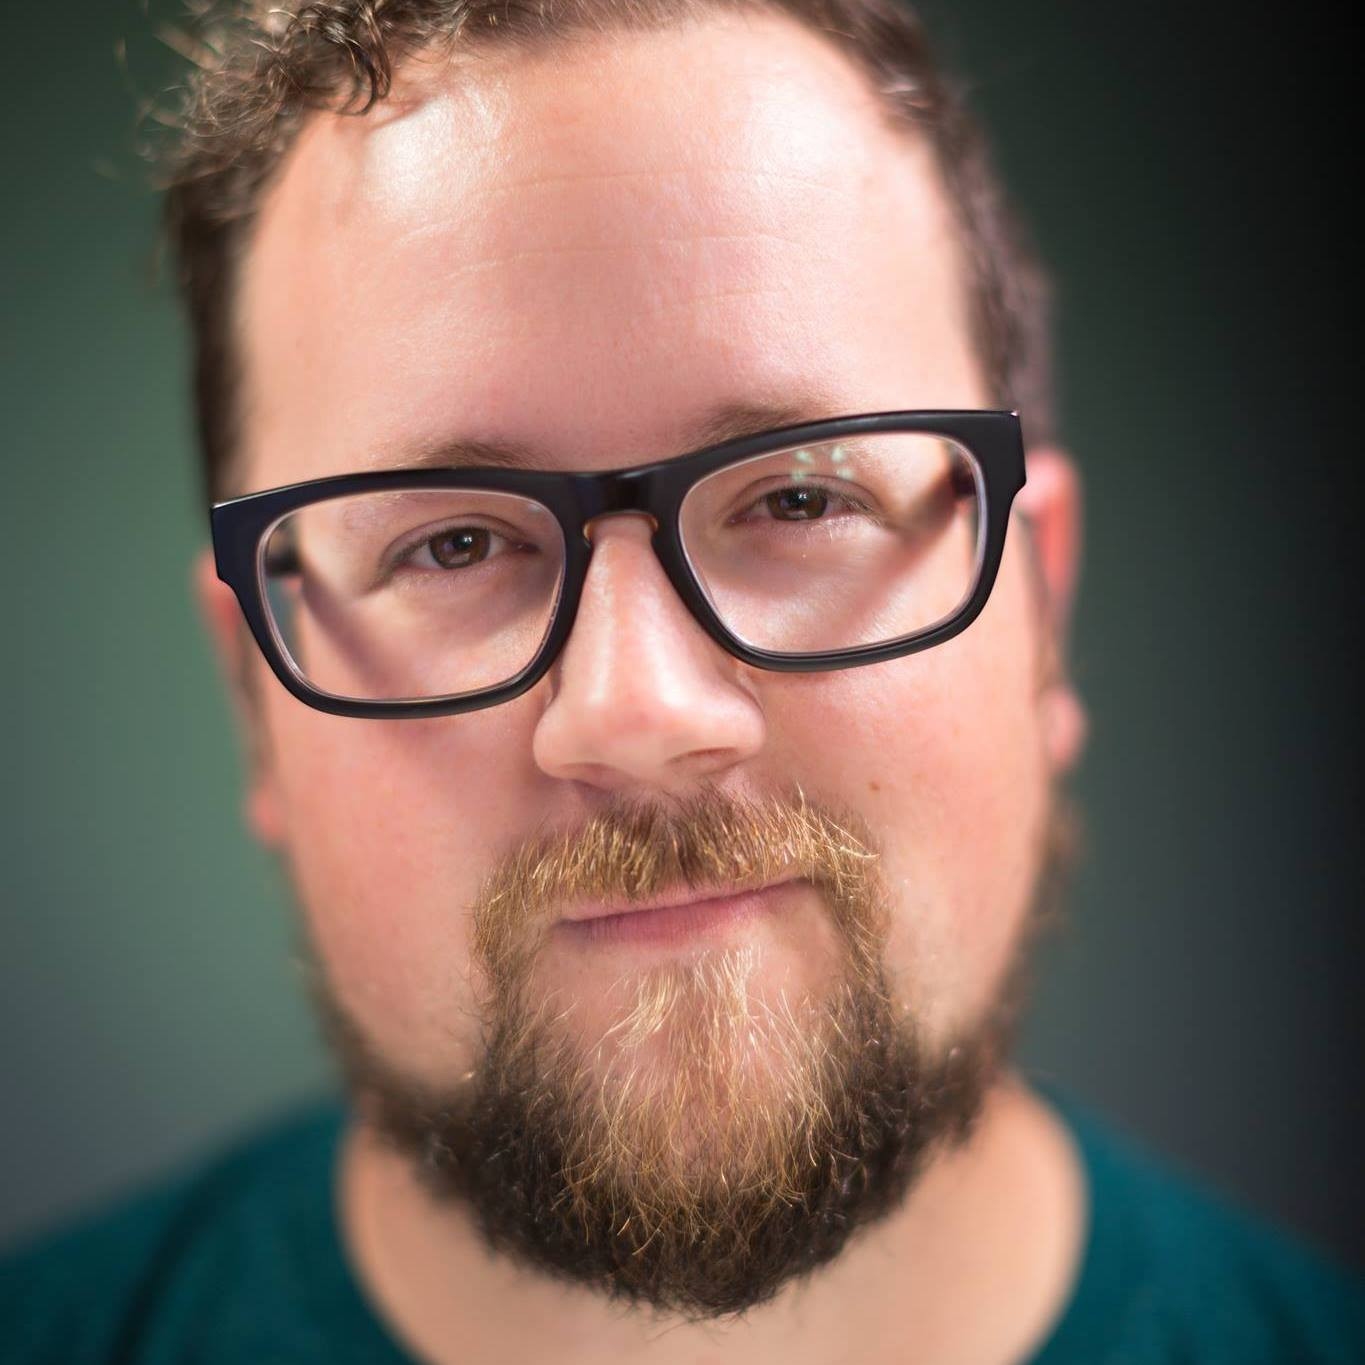 Brad Holt  {he/him}  video production, motion design, photography   Brad is a freelance video producer, motion designer, and photographer, producing national TV ads and social media content for various businesses. 2019 is the tenth year of his Project 365, for which he makes a photo and journal entry every day, producing a book at the end of each year.   Instagram  |  Twitter